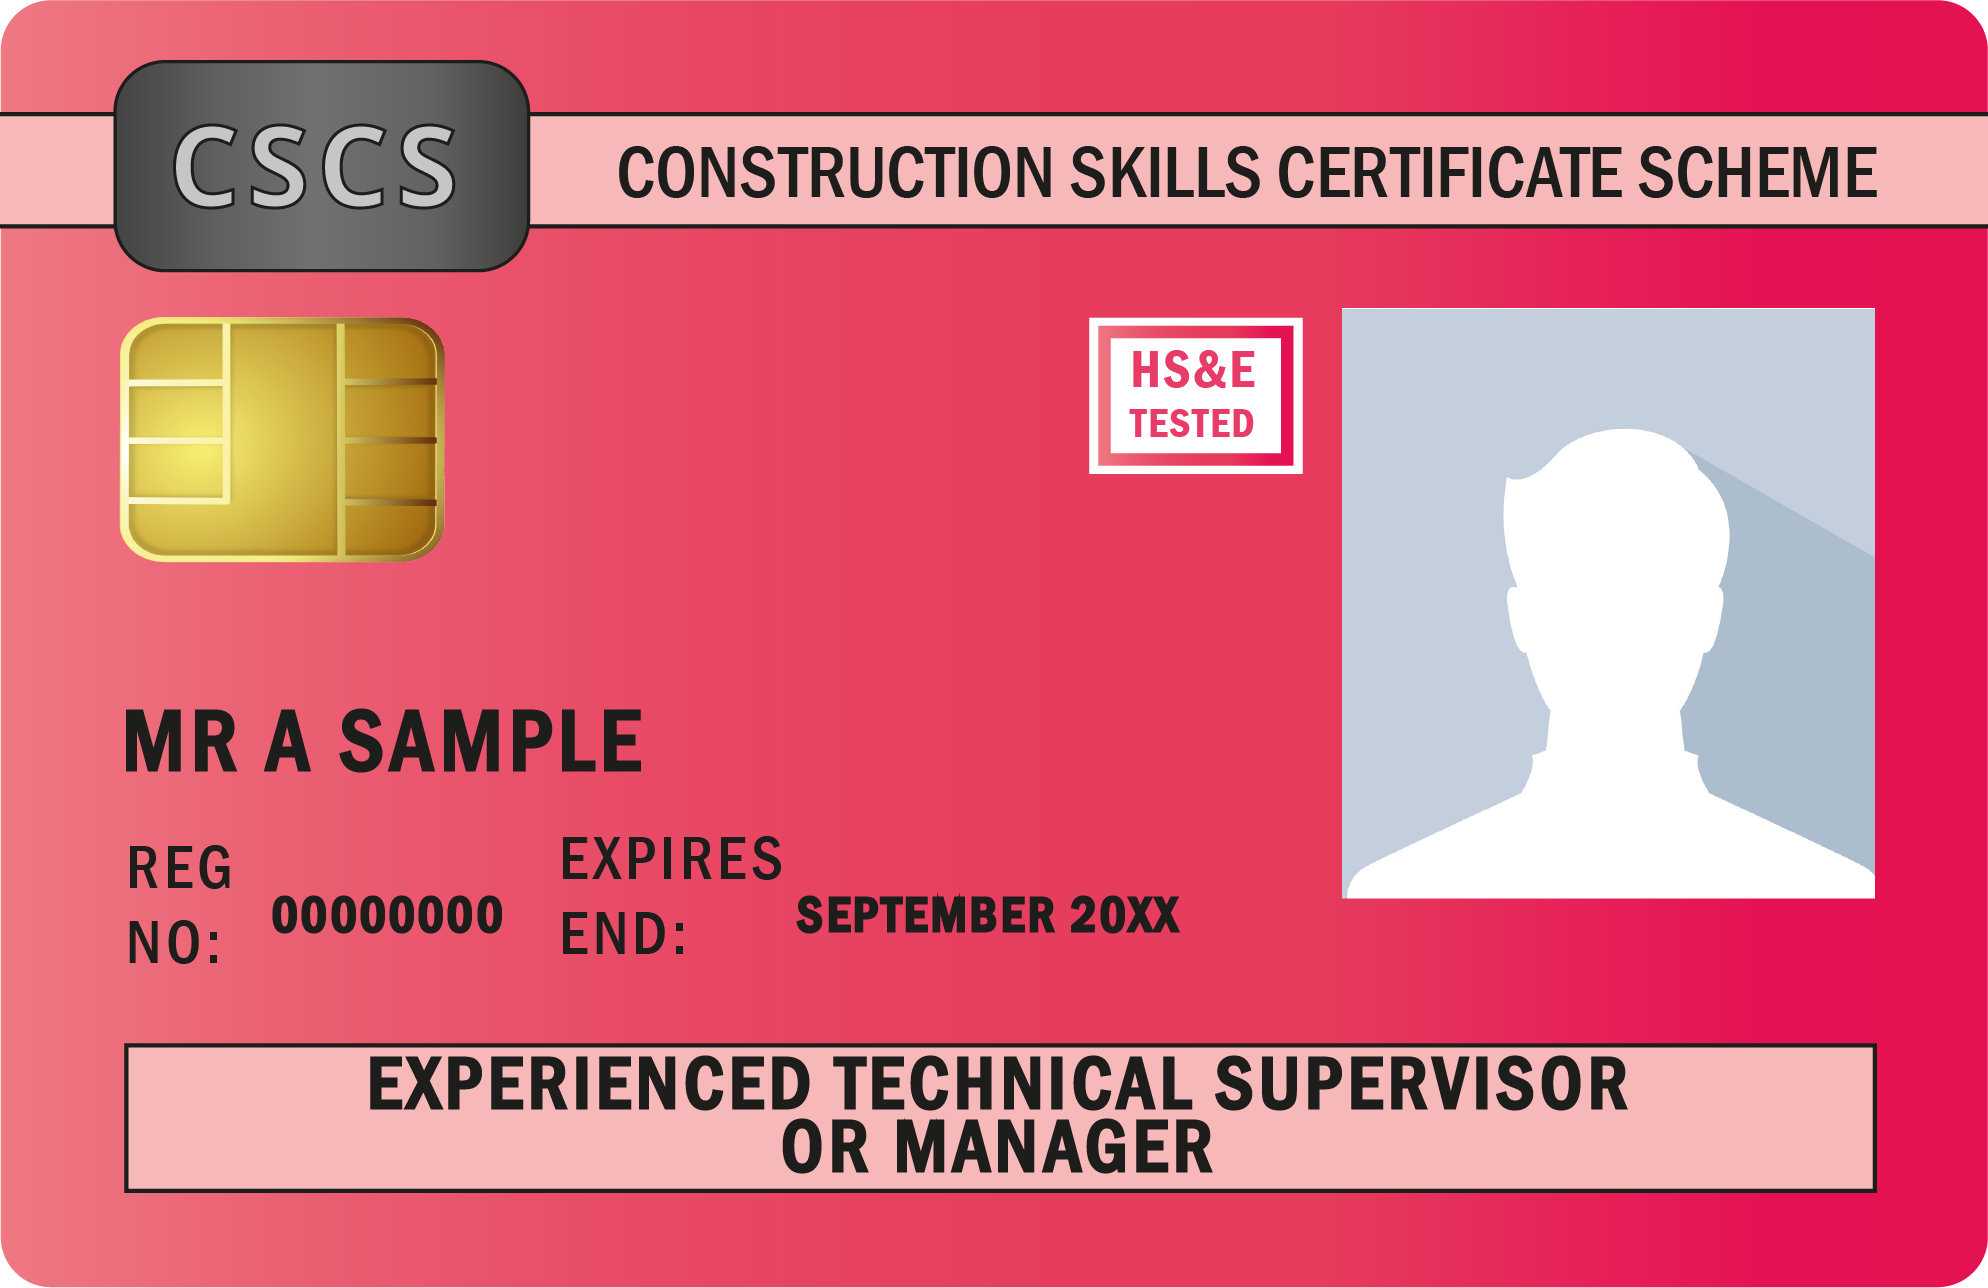 Image shows Experienced Techincal Supervisor/Manager Red Card.